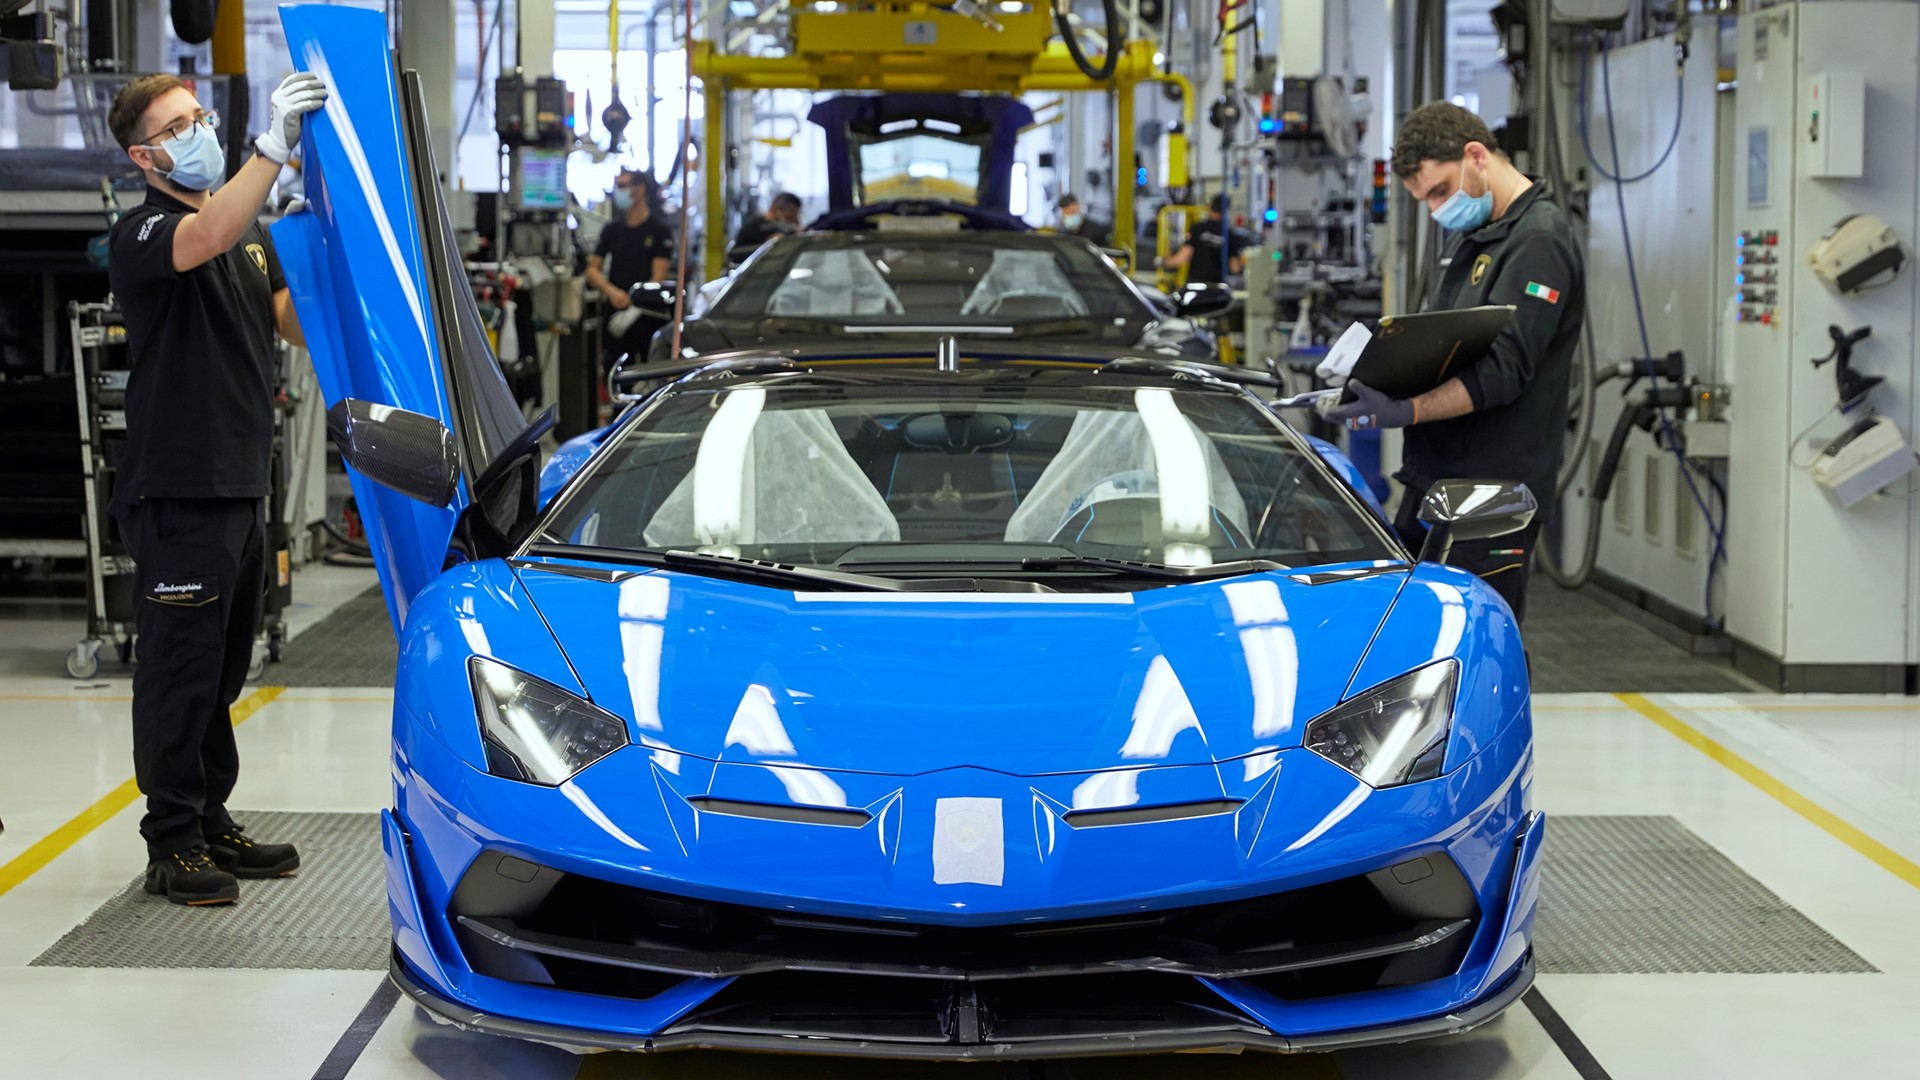 Automobili Lamborghini prepares to restart production on May 4 with people-safety foremost - Image 3